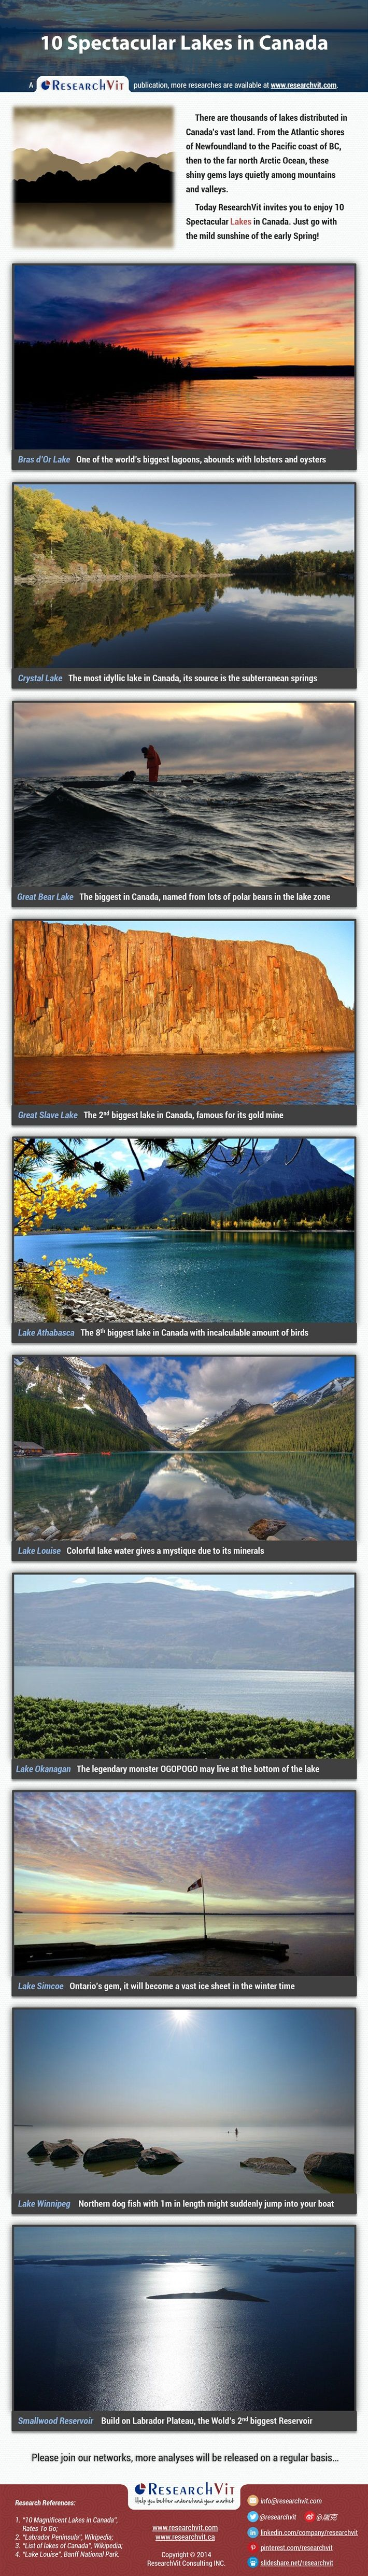 10 Spectacular Lakes in Canada: There are thousands of lakes distributed in Canada's vast land. From the Atlantic shores of Newfoundland to the Pacific coast of BC, then to the far north Arctic Ocean, these shiny gems lays quietly among mountains and valleys. Today ResearchVit invites you to enjoy 10 Spectacular Lakes in Canada. Just go with the mild sunshine of the early Spring!